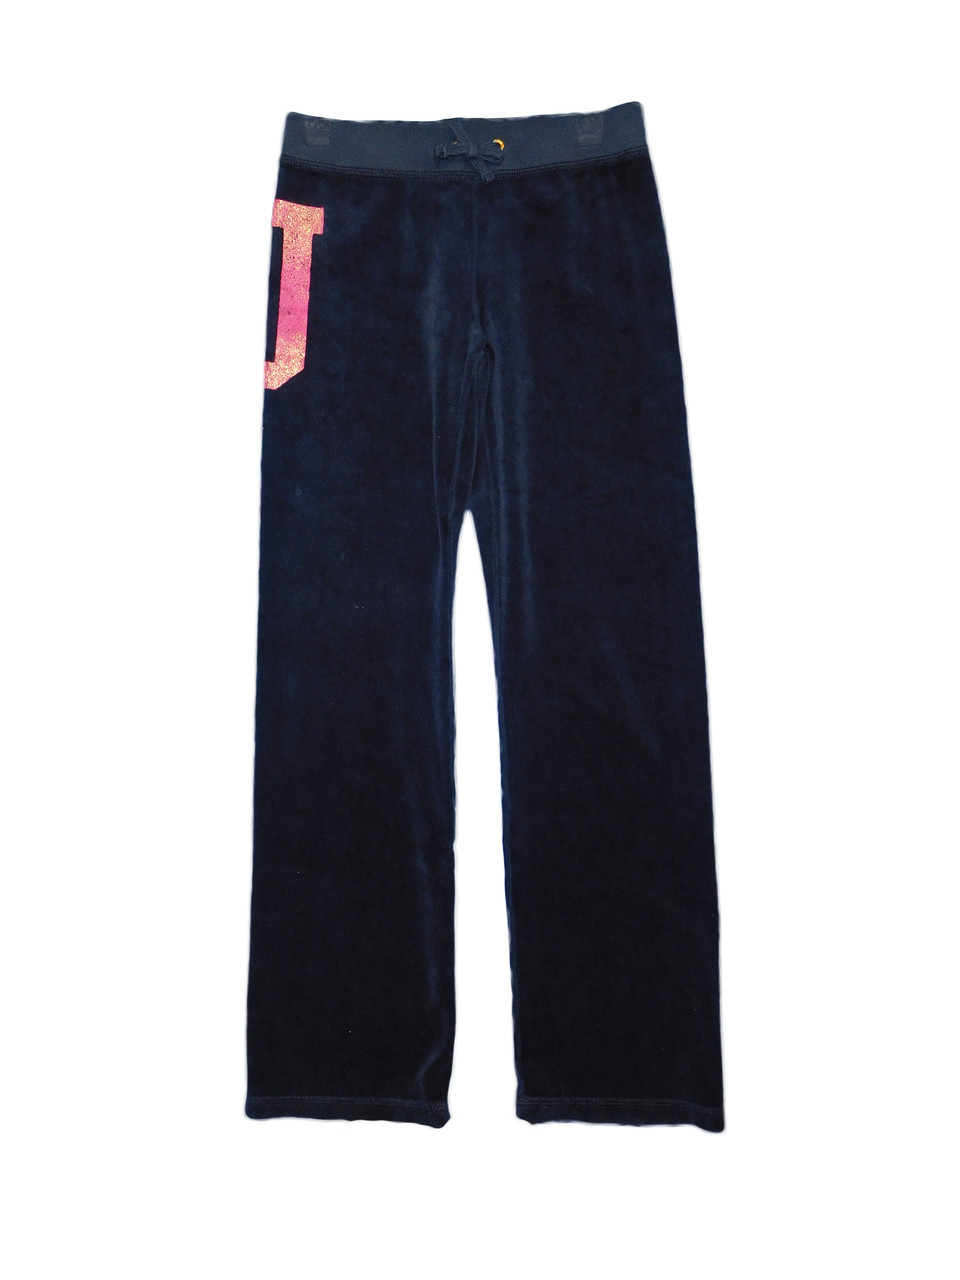 758f9f9d0ac9 Juicy-couture-navy-tracksuit